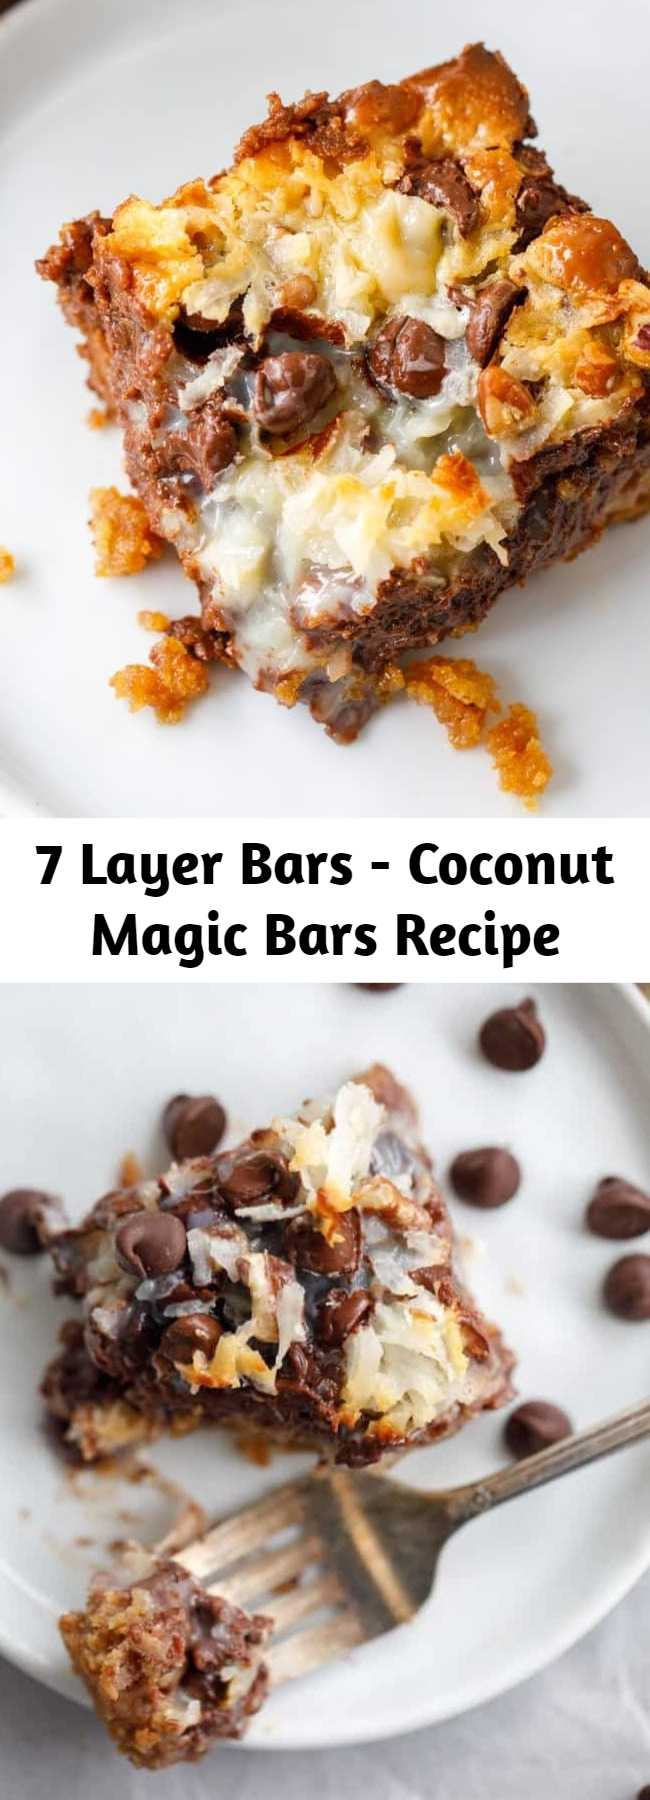 7 Layer Bars - Coconut Magic Bars Recipe - These coconut magic bars are so easy to make that it's almost funny. It doesn't seem like something so TASTY could result from layering a few ingredients in a baking dish. Y'all, these coconut magic bars are like HEAVEN. These ooey-gooey coconut magic cookie bars are my favorite dessert EVER! #Dessert #Coconut #Bars